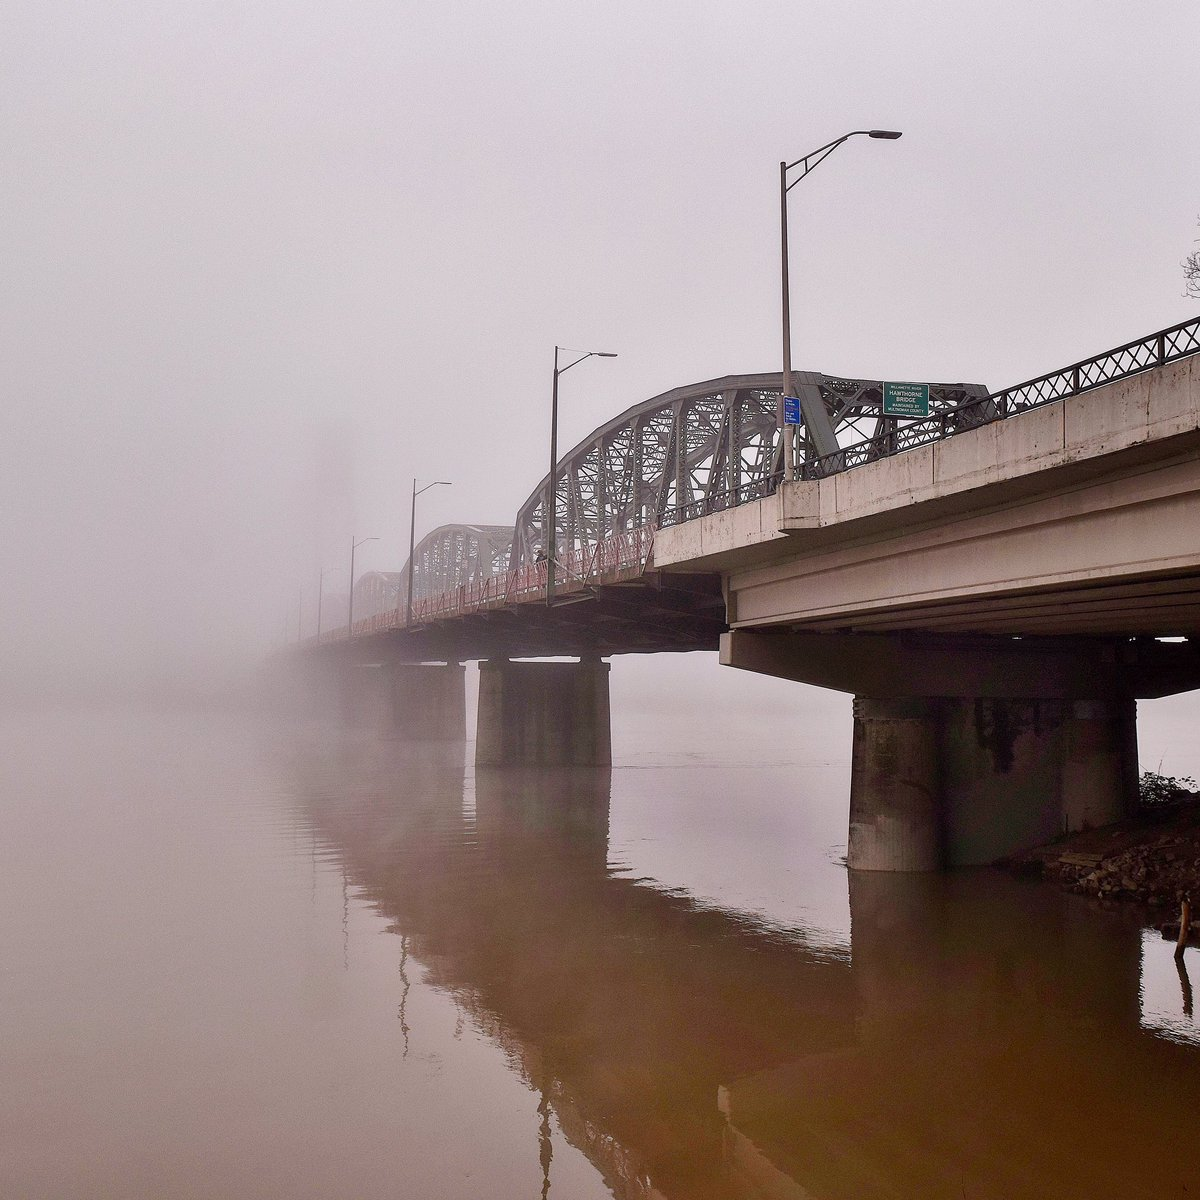 A bridge to nowhere.... a bit foggy in Portland today. #LiveOnK2 #pdxtst <br>http://pic.twitter.com/L7LD0eQ4xF